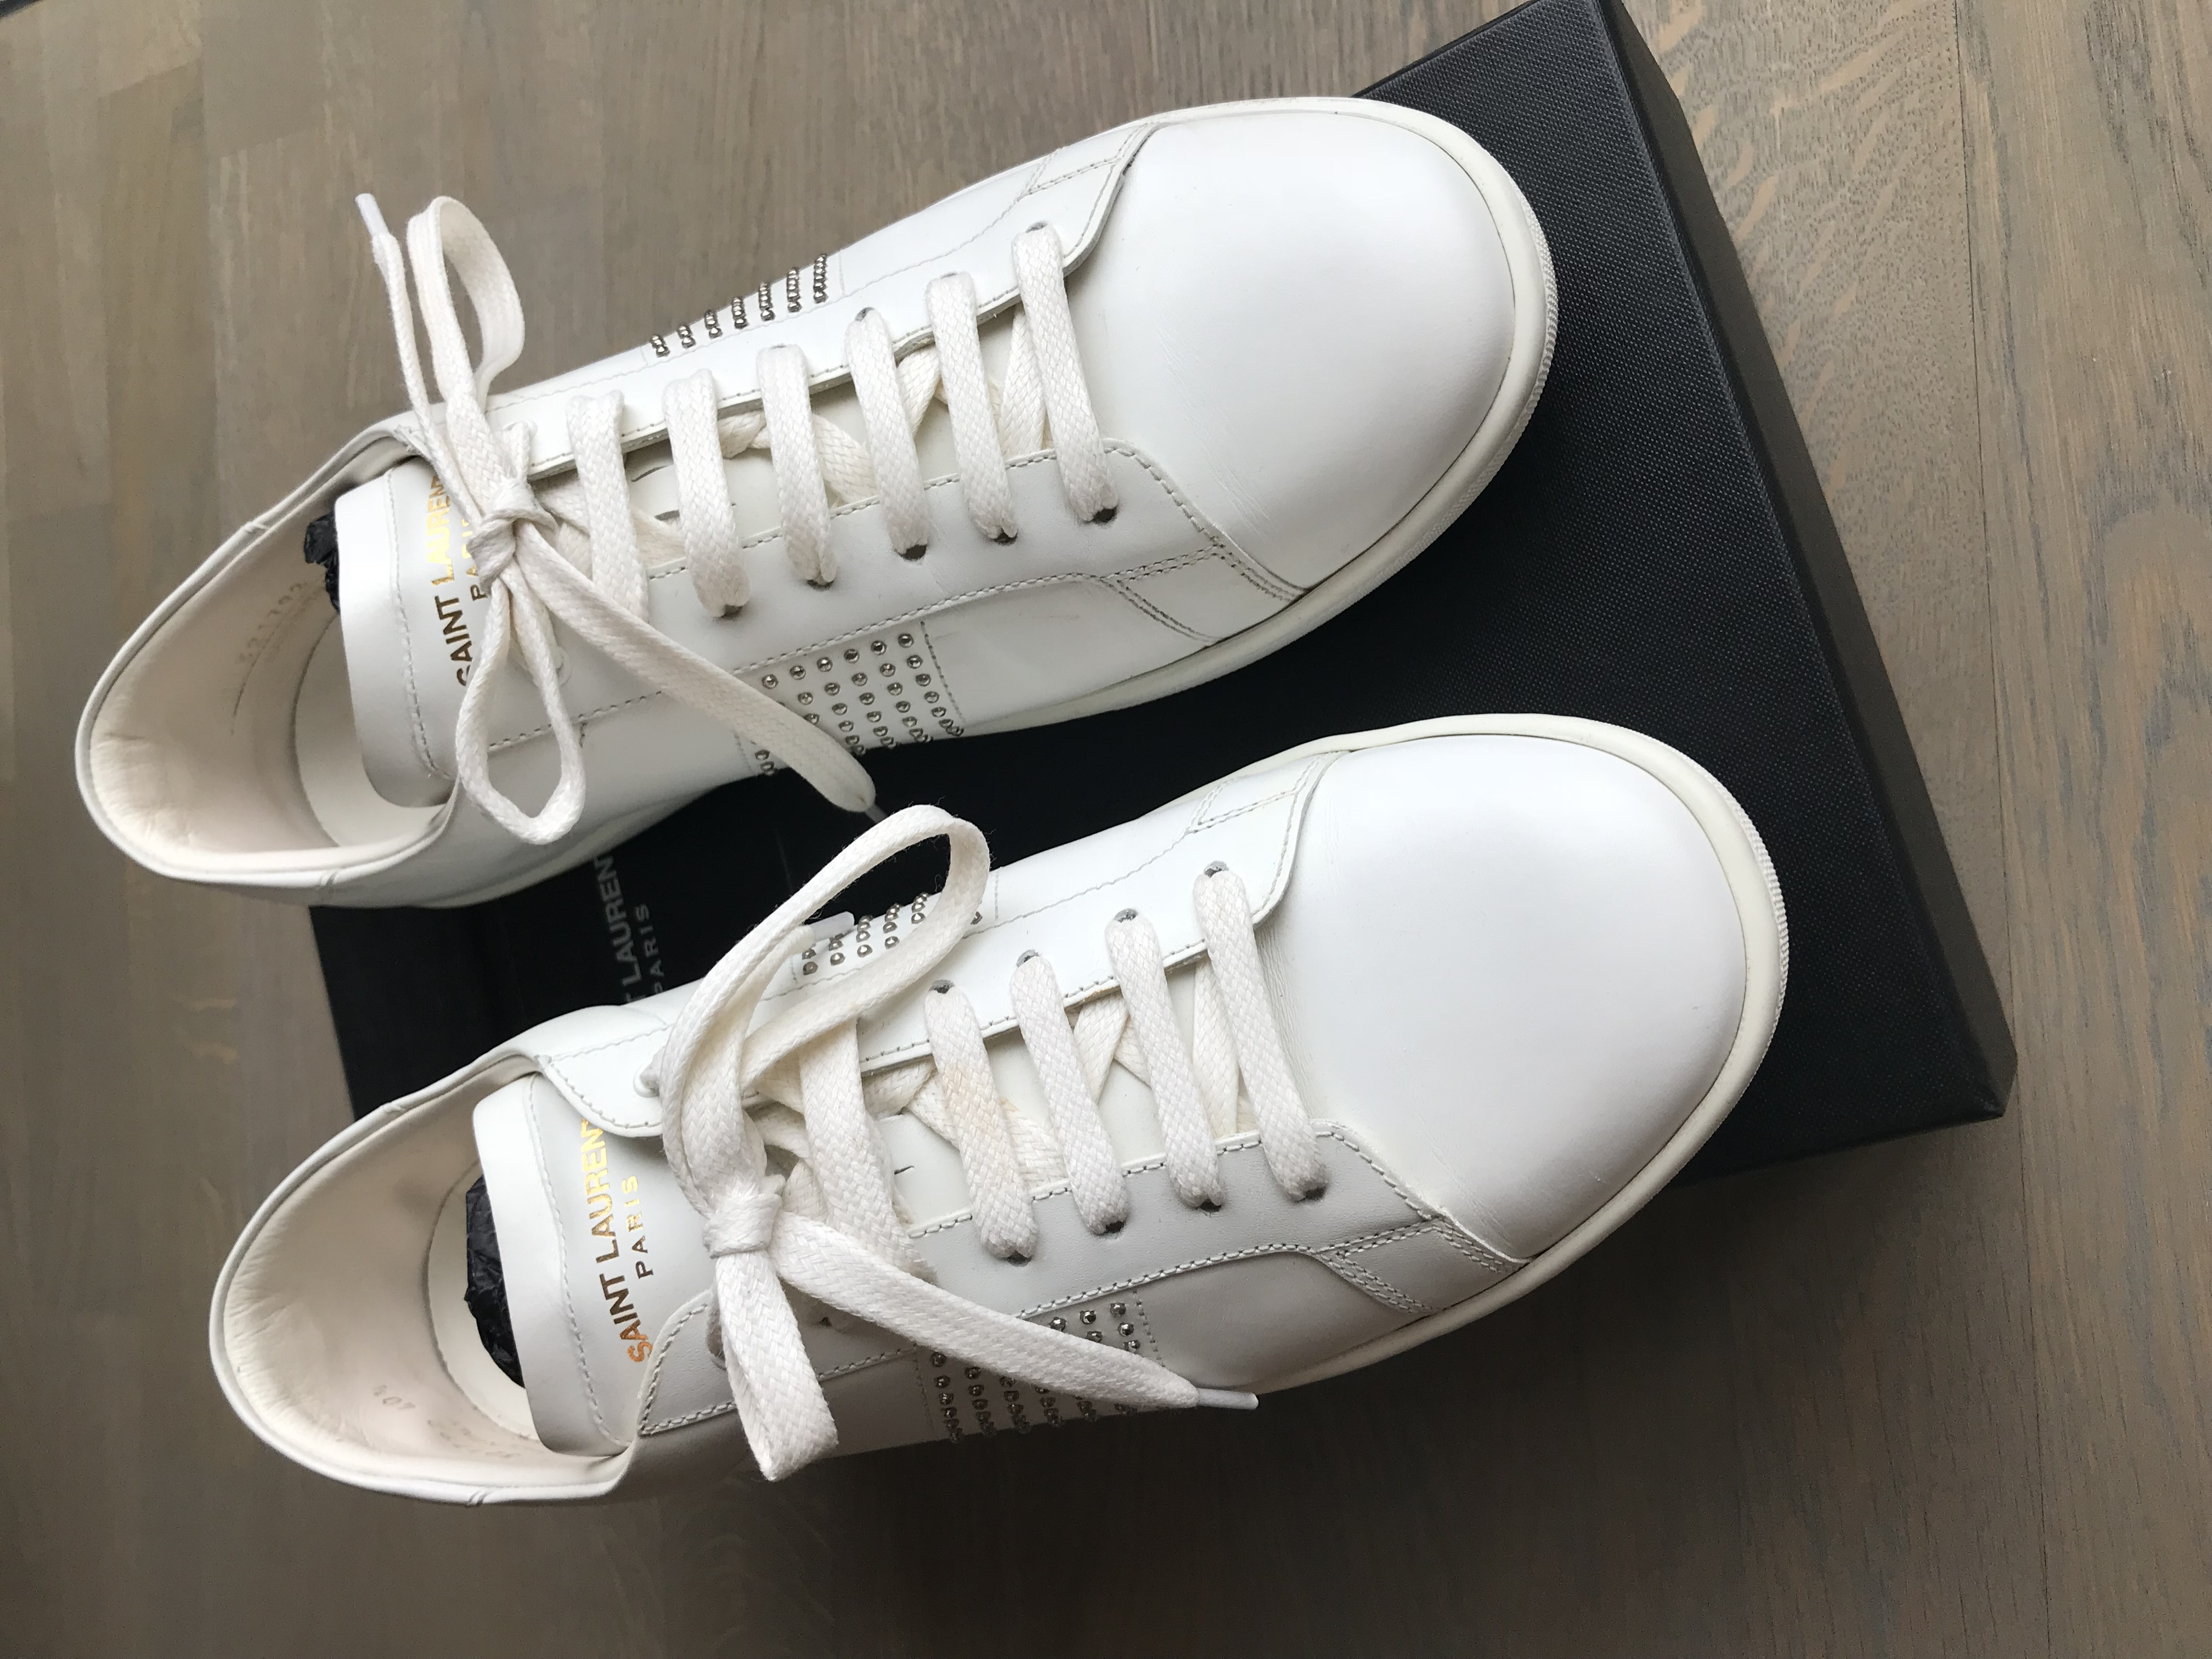 cd79f4677ab Saint Laurent Paris Hedi Slimane / Size 40.5 / With Box / Extra Shoe Laces  / Leather With Metal Rivets / Made In Italy / Hedi Slimane / Unisex |  Grailed